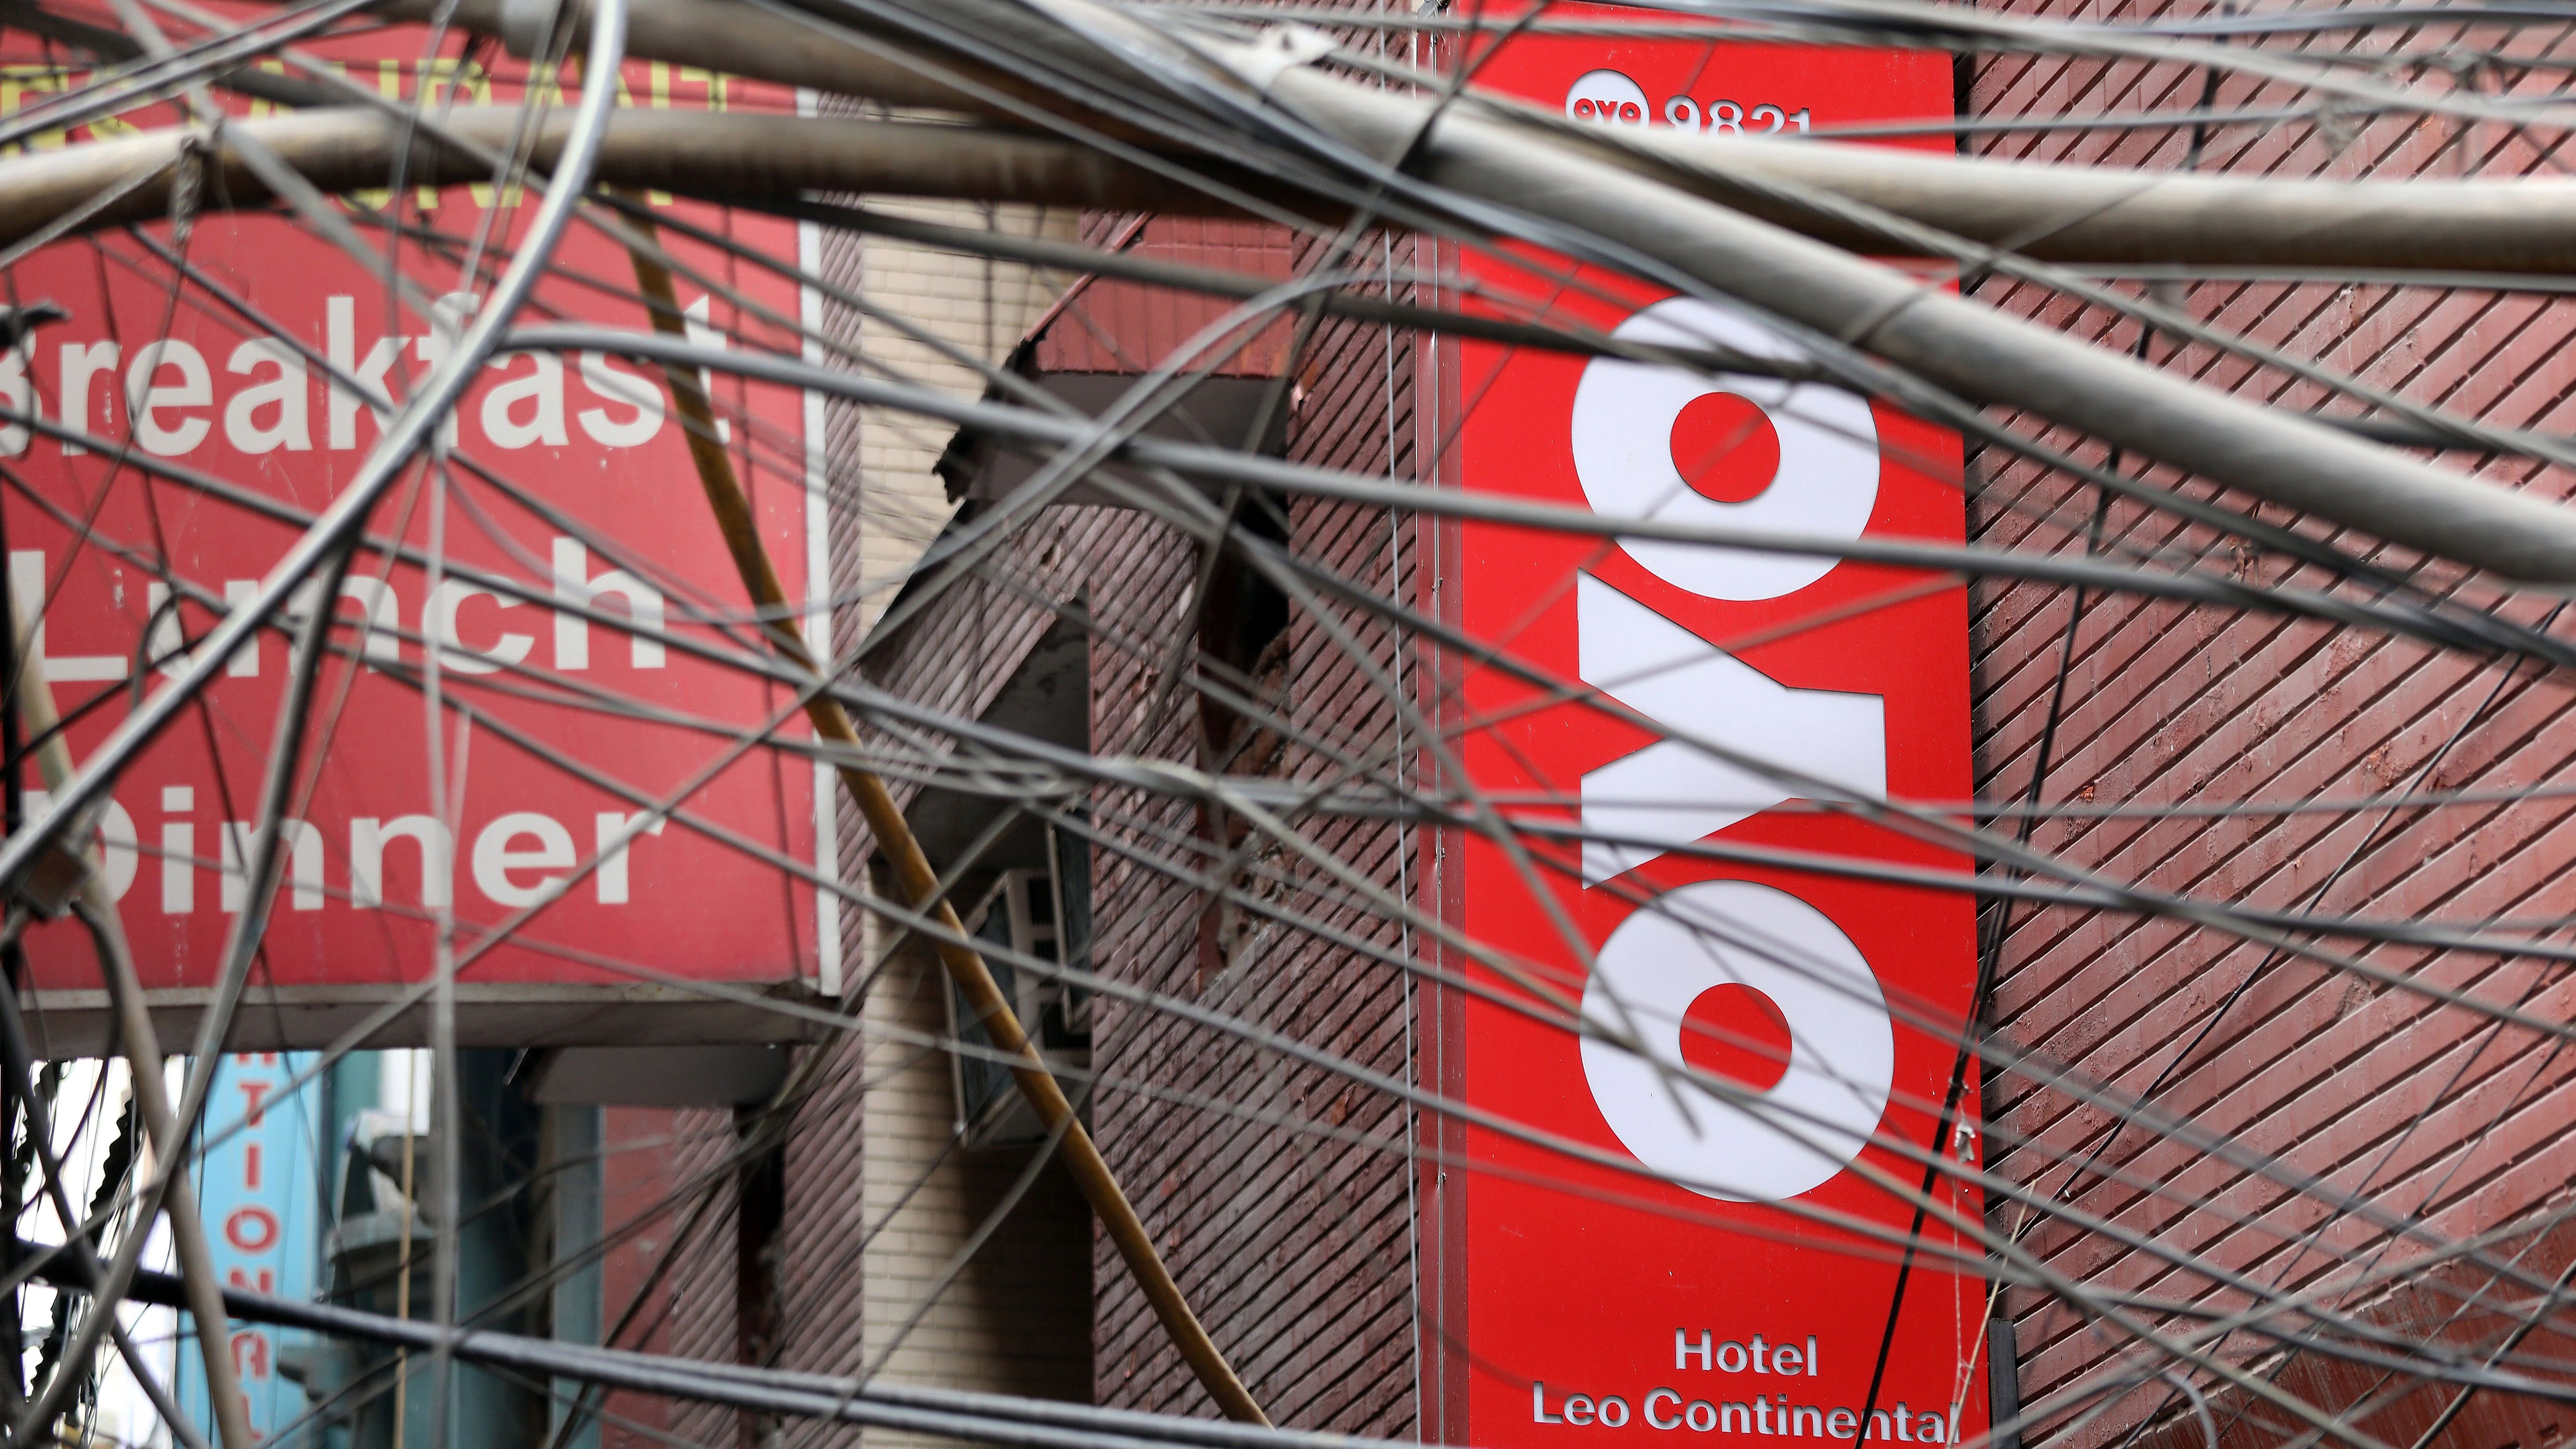 The logo of OYO, India's largest and fastest-growing hotel chain, installed on a hotel building is seen through wires in an alley in New Delhi